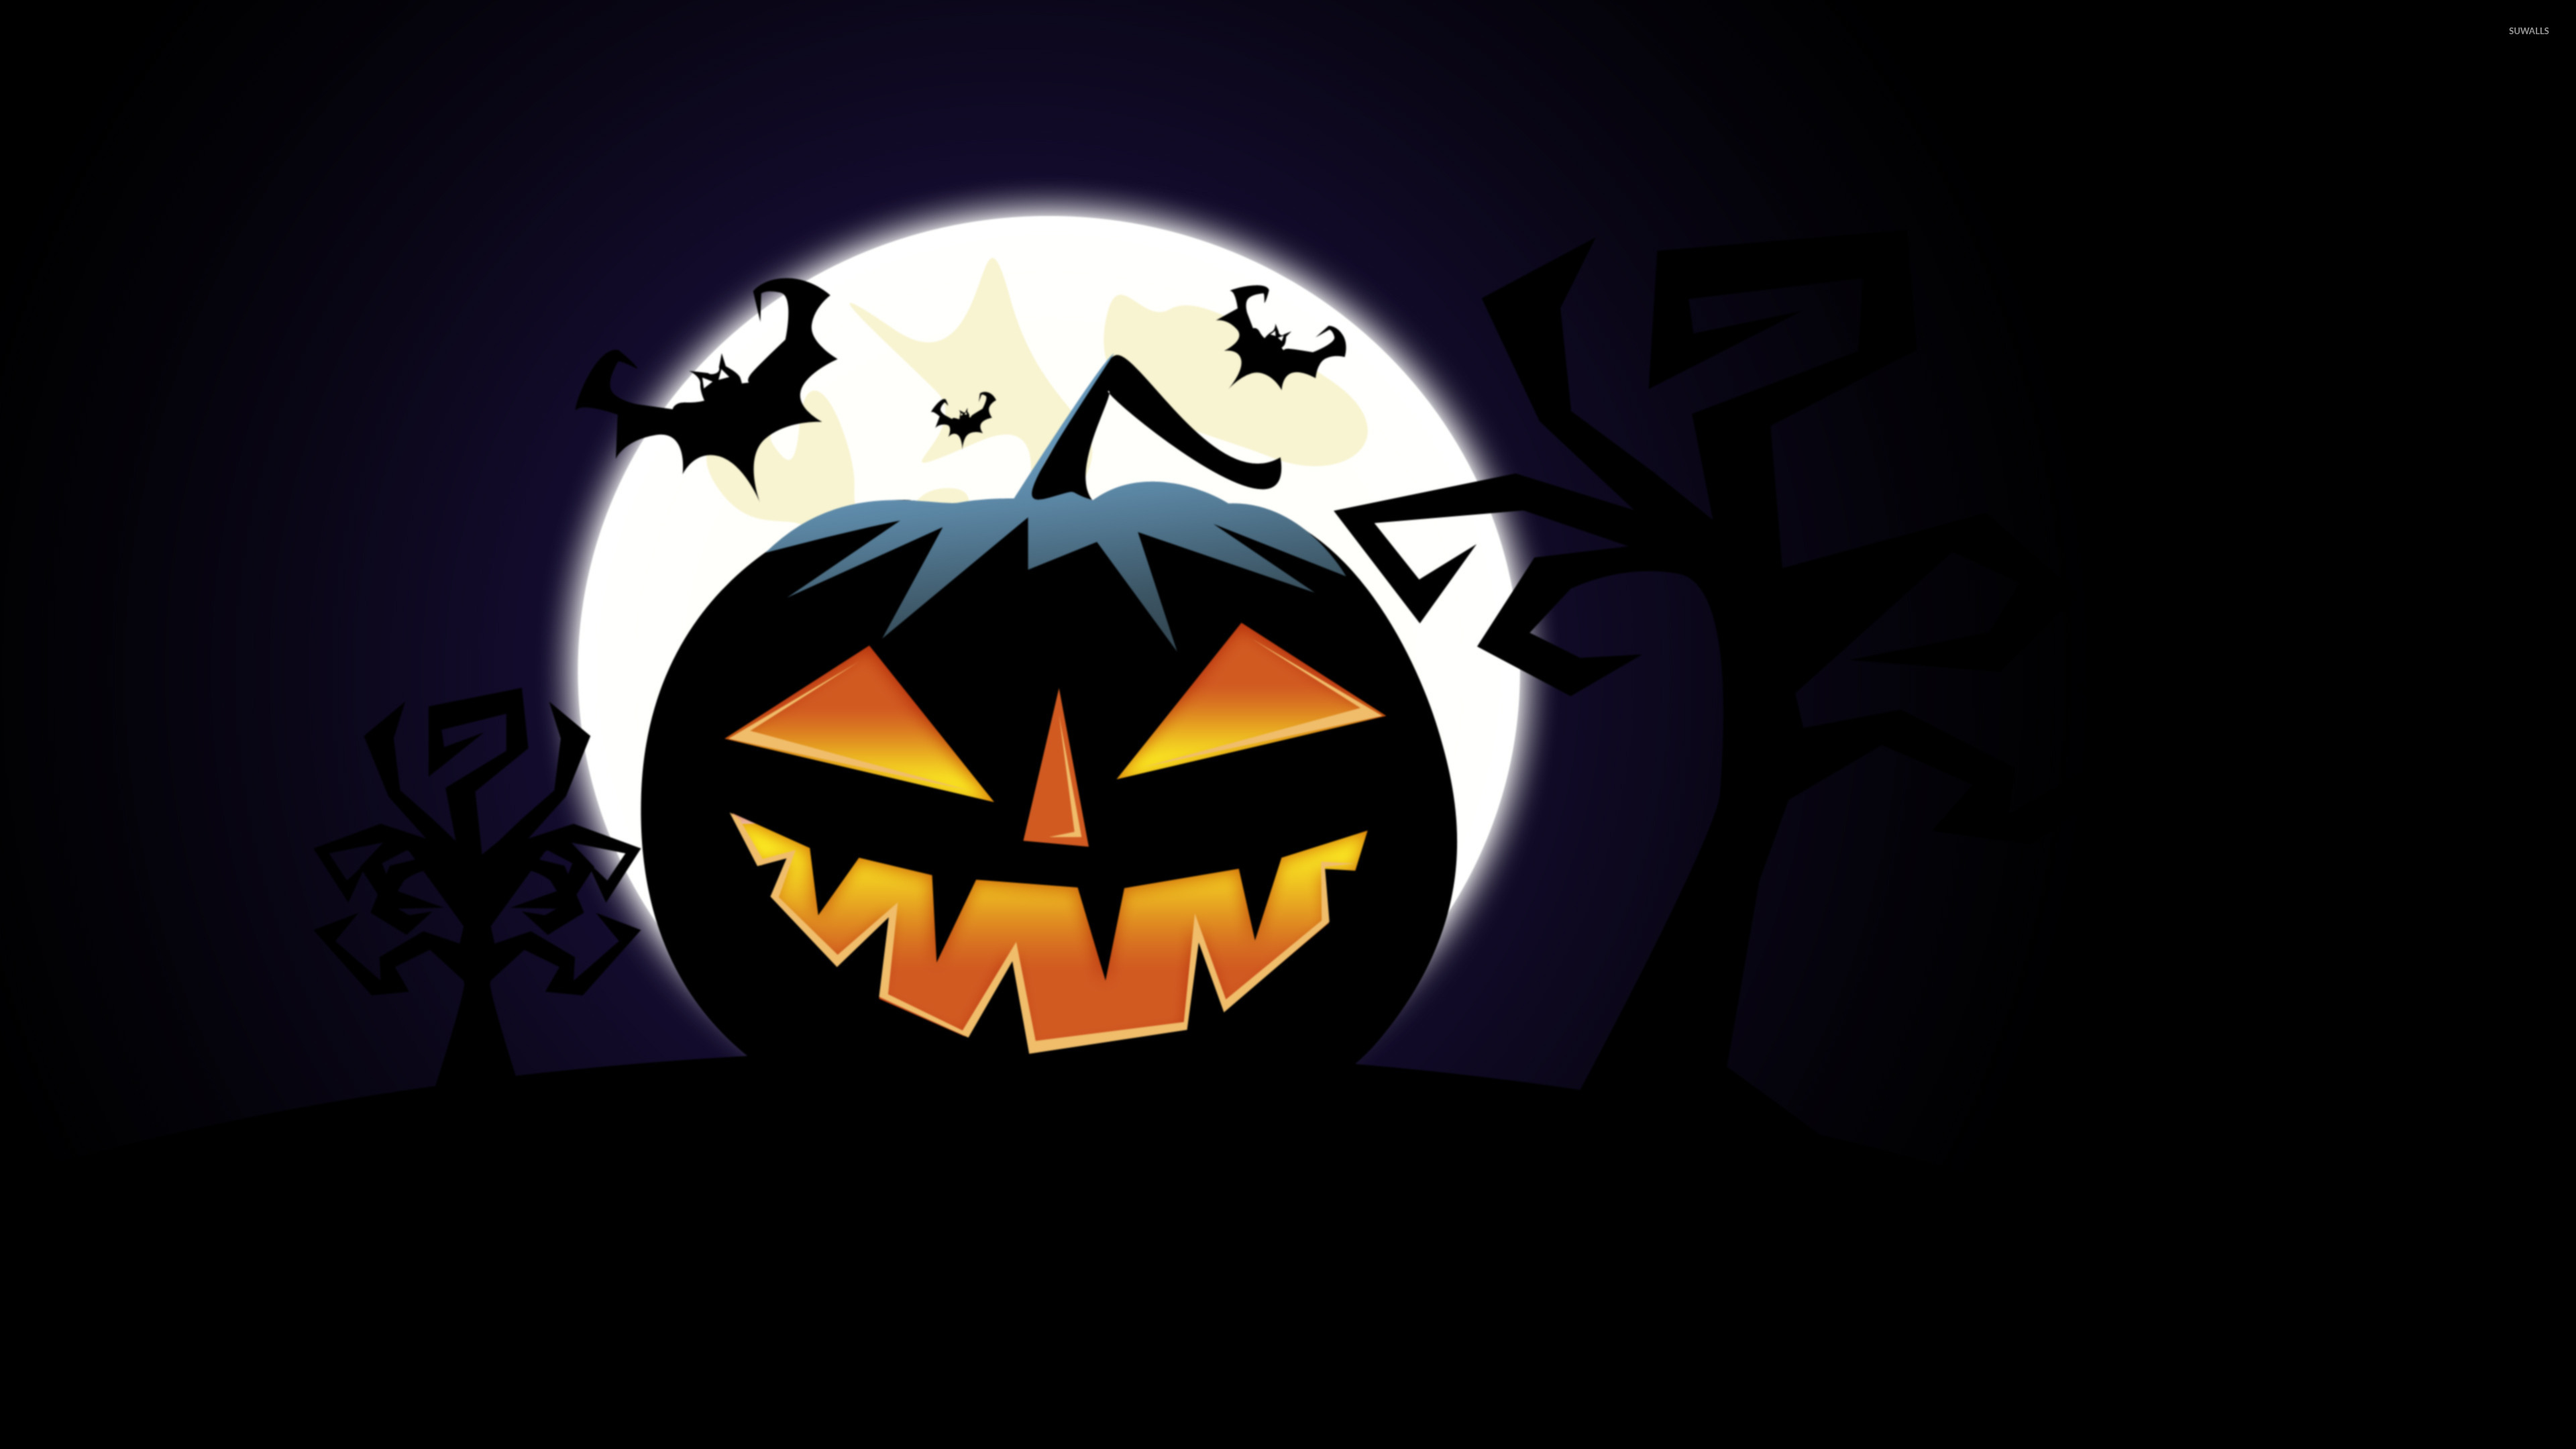 Free Download Jack O Lantern On Halloween Night Wallpaper Holiday